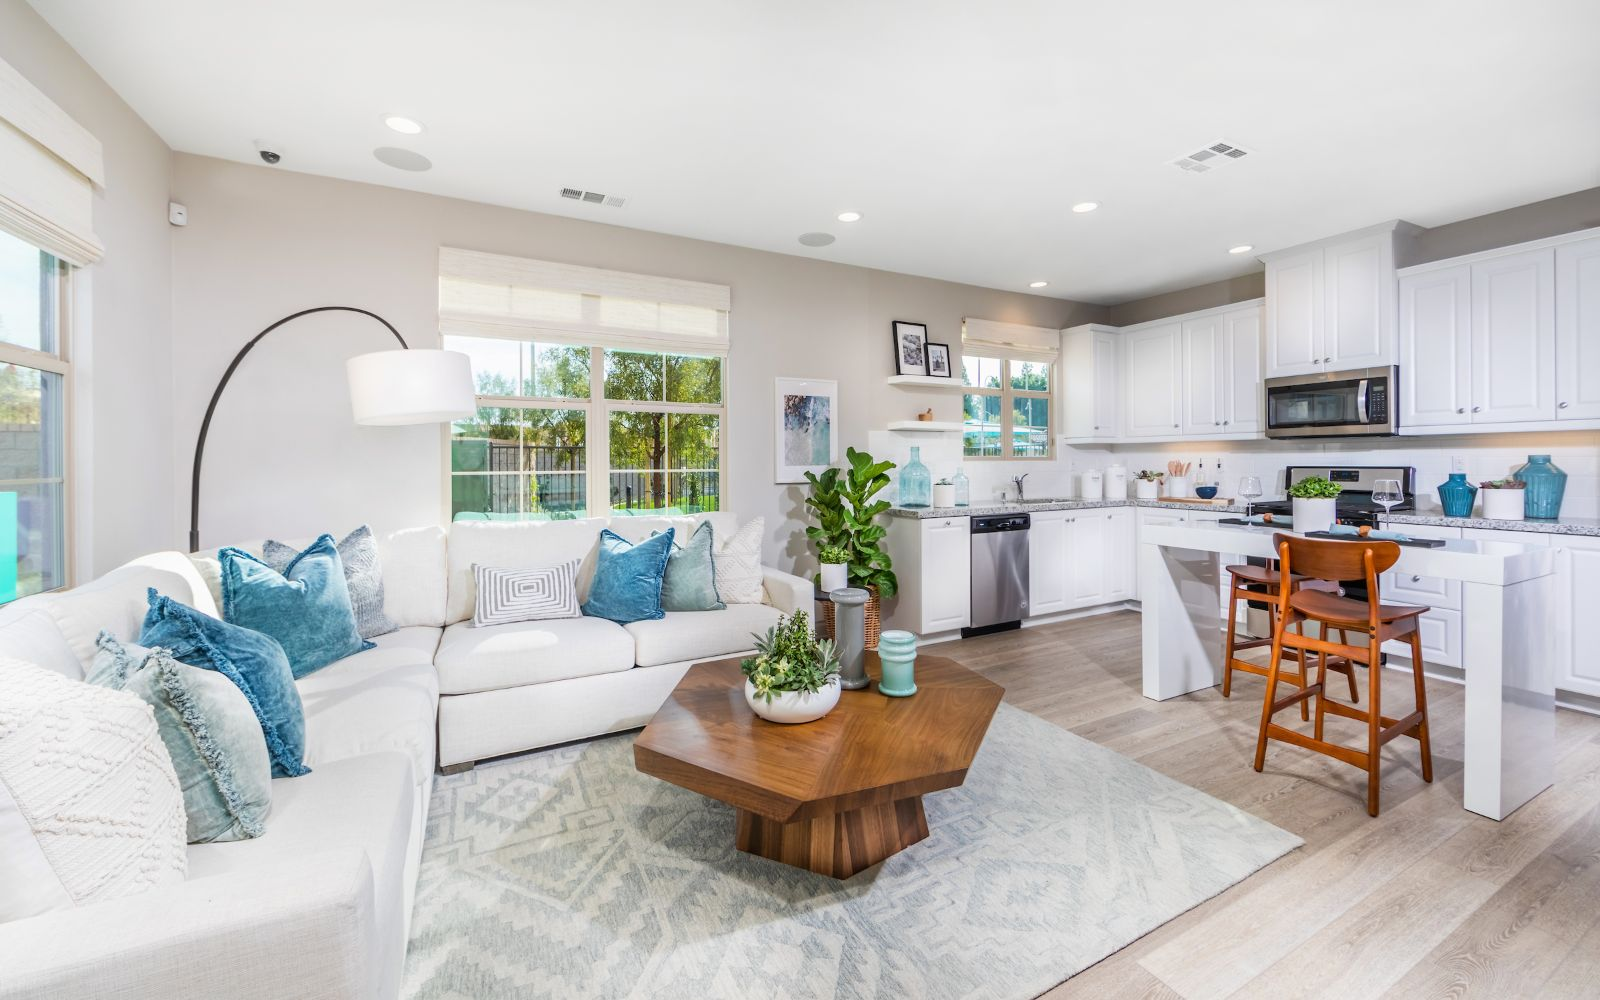 Towns Plan 1 Kitchen and Living Room | Lantana @Beach in Stanton, CA | Brookfield Residential